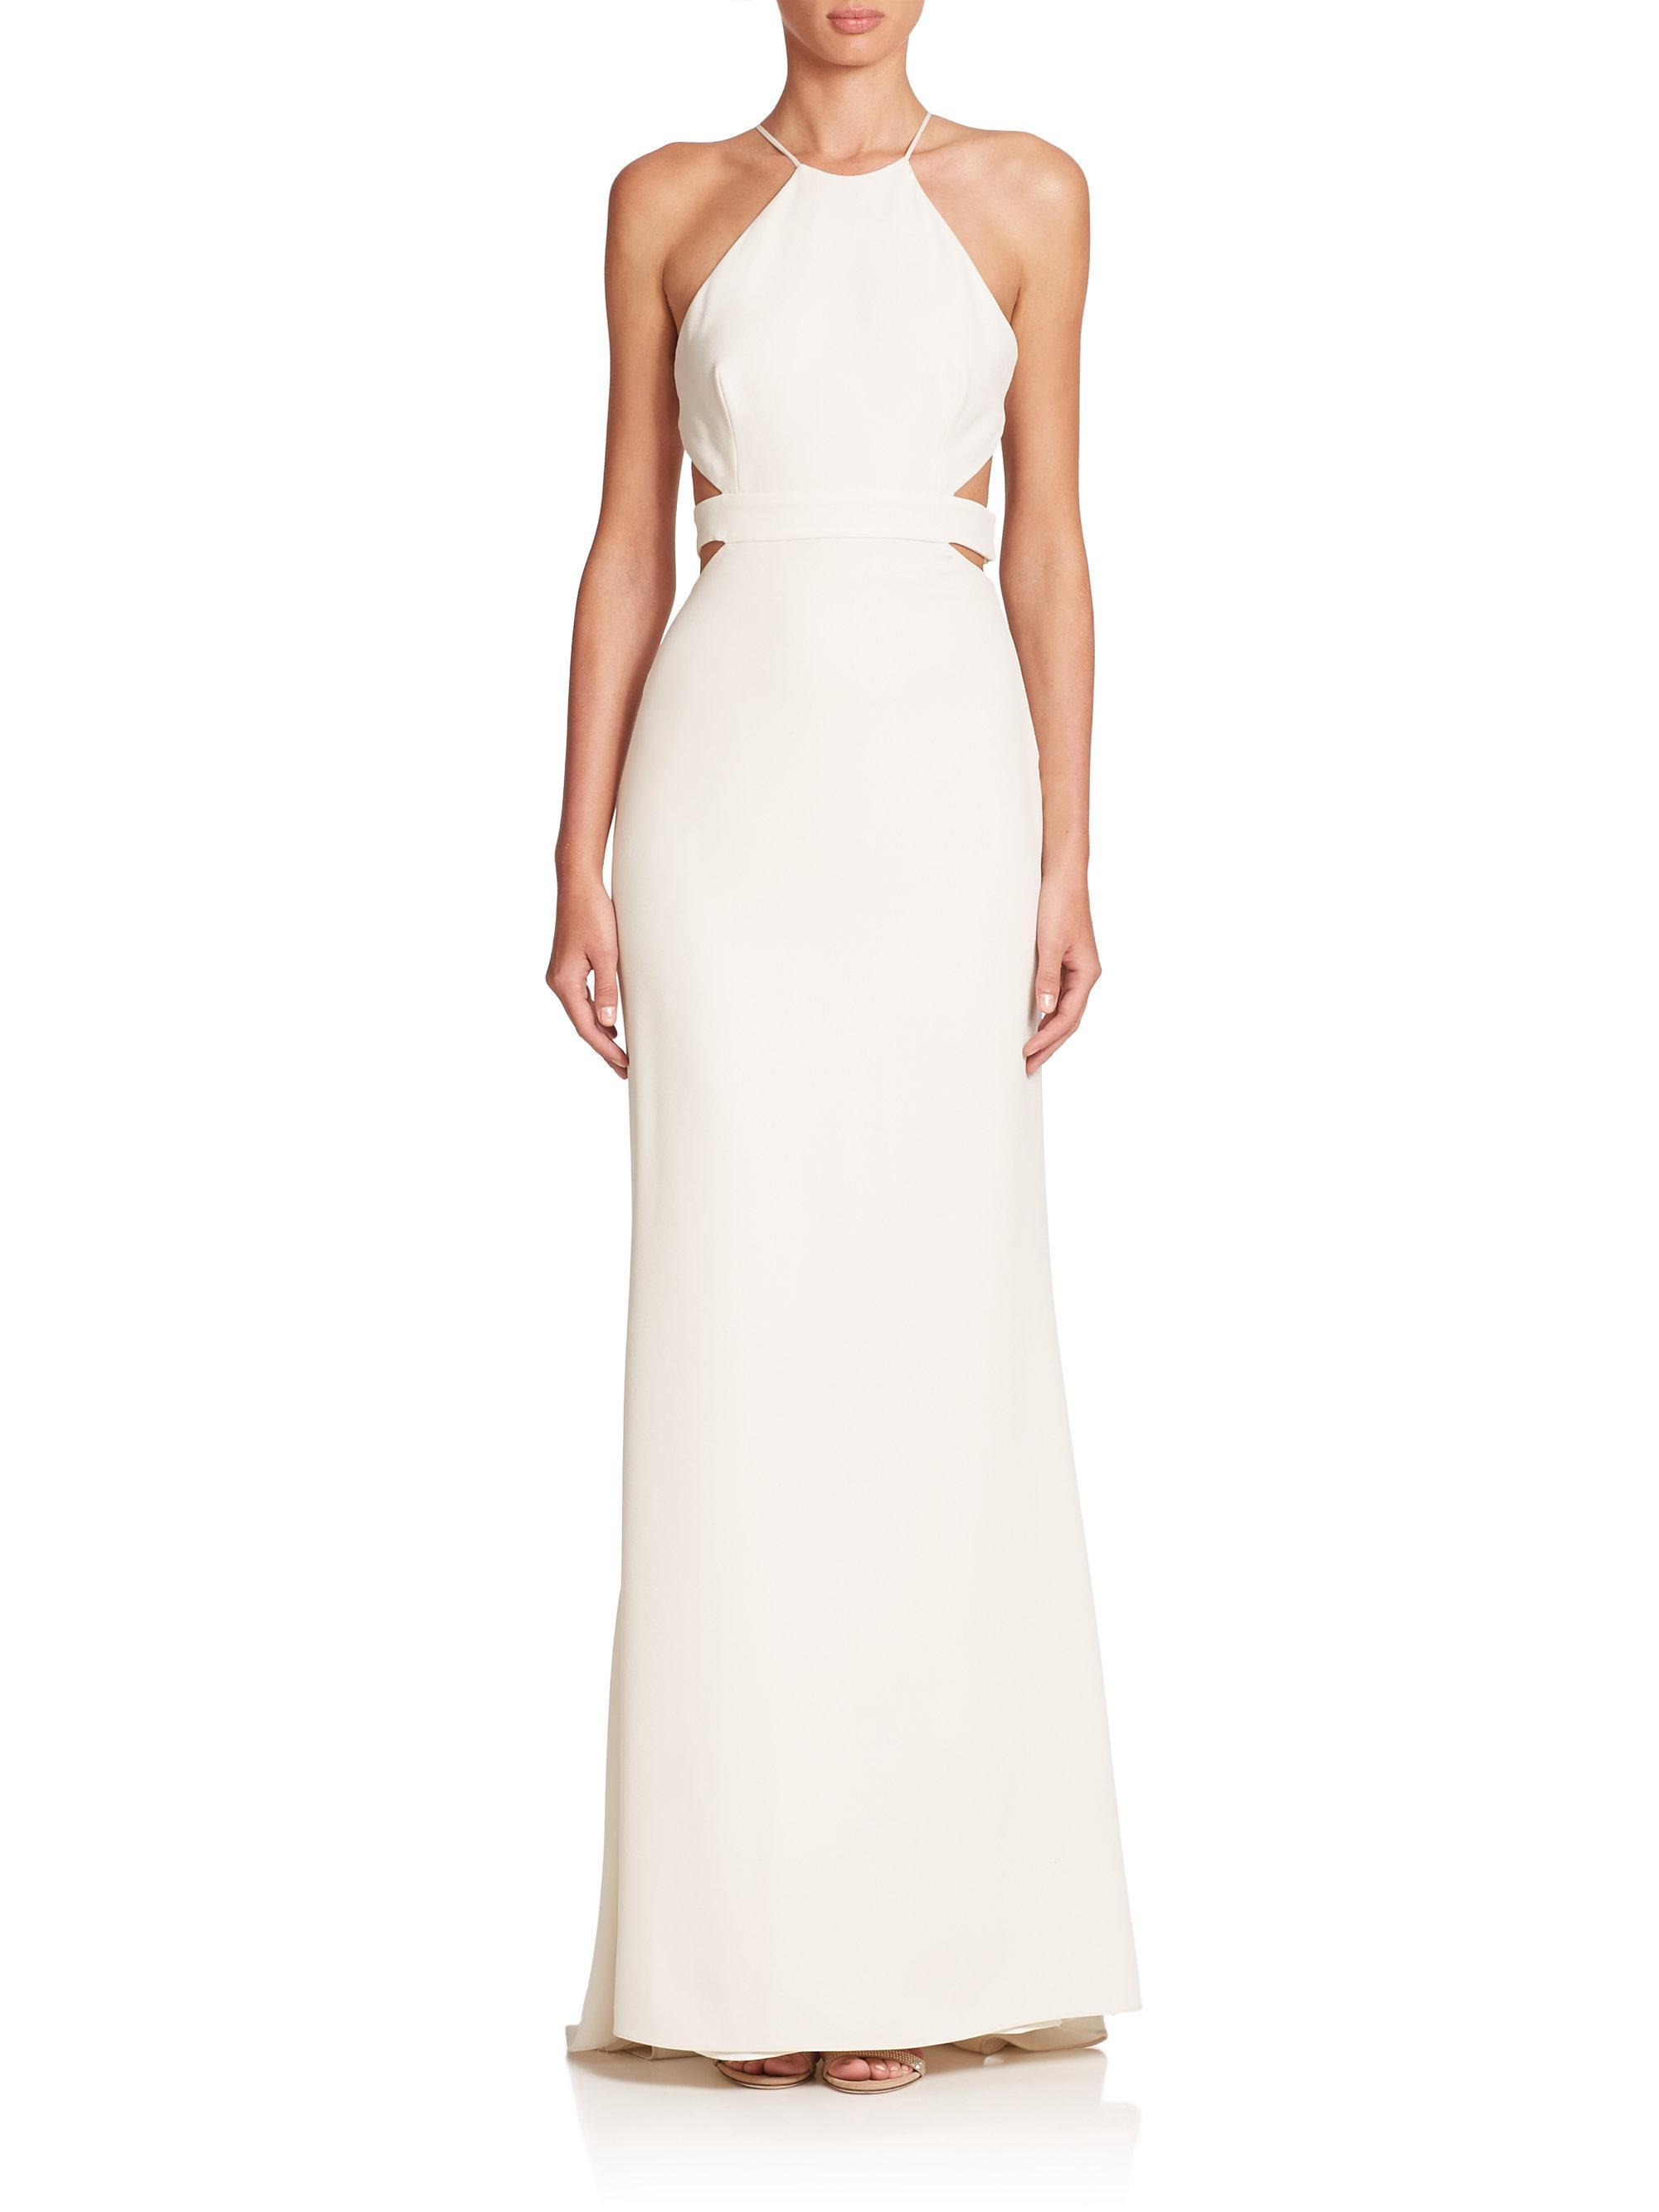 Lyst - Halston Heritage Cutout-back Halter Gown in White